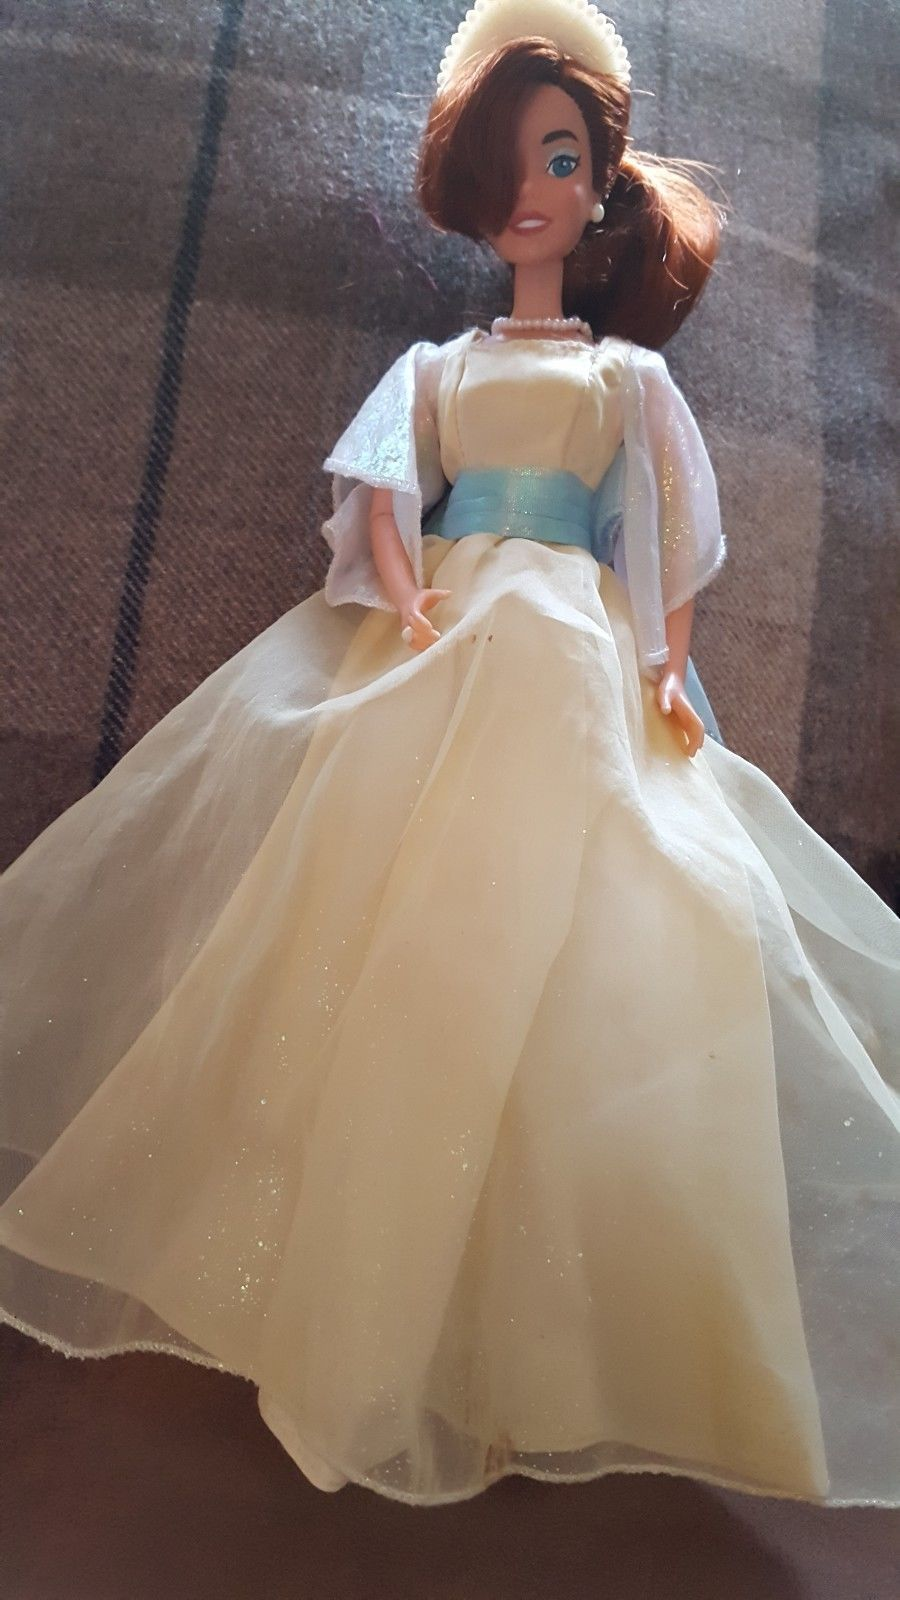 3114bcc9214d disney 1997 dream waltz anastasia doll relisted due to non payer   11.5+3.3